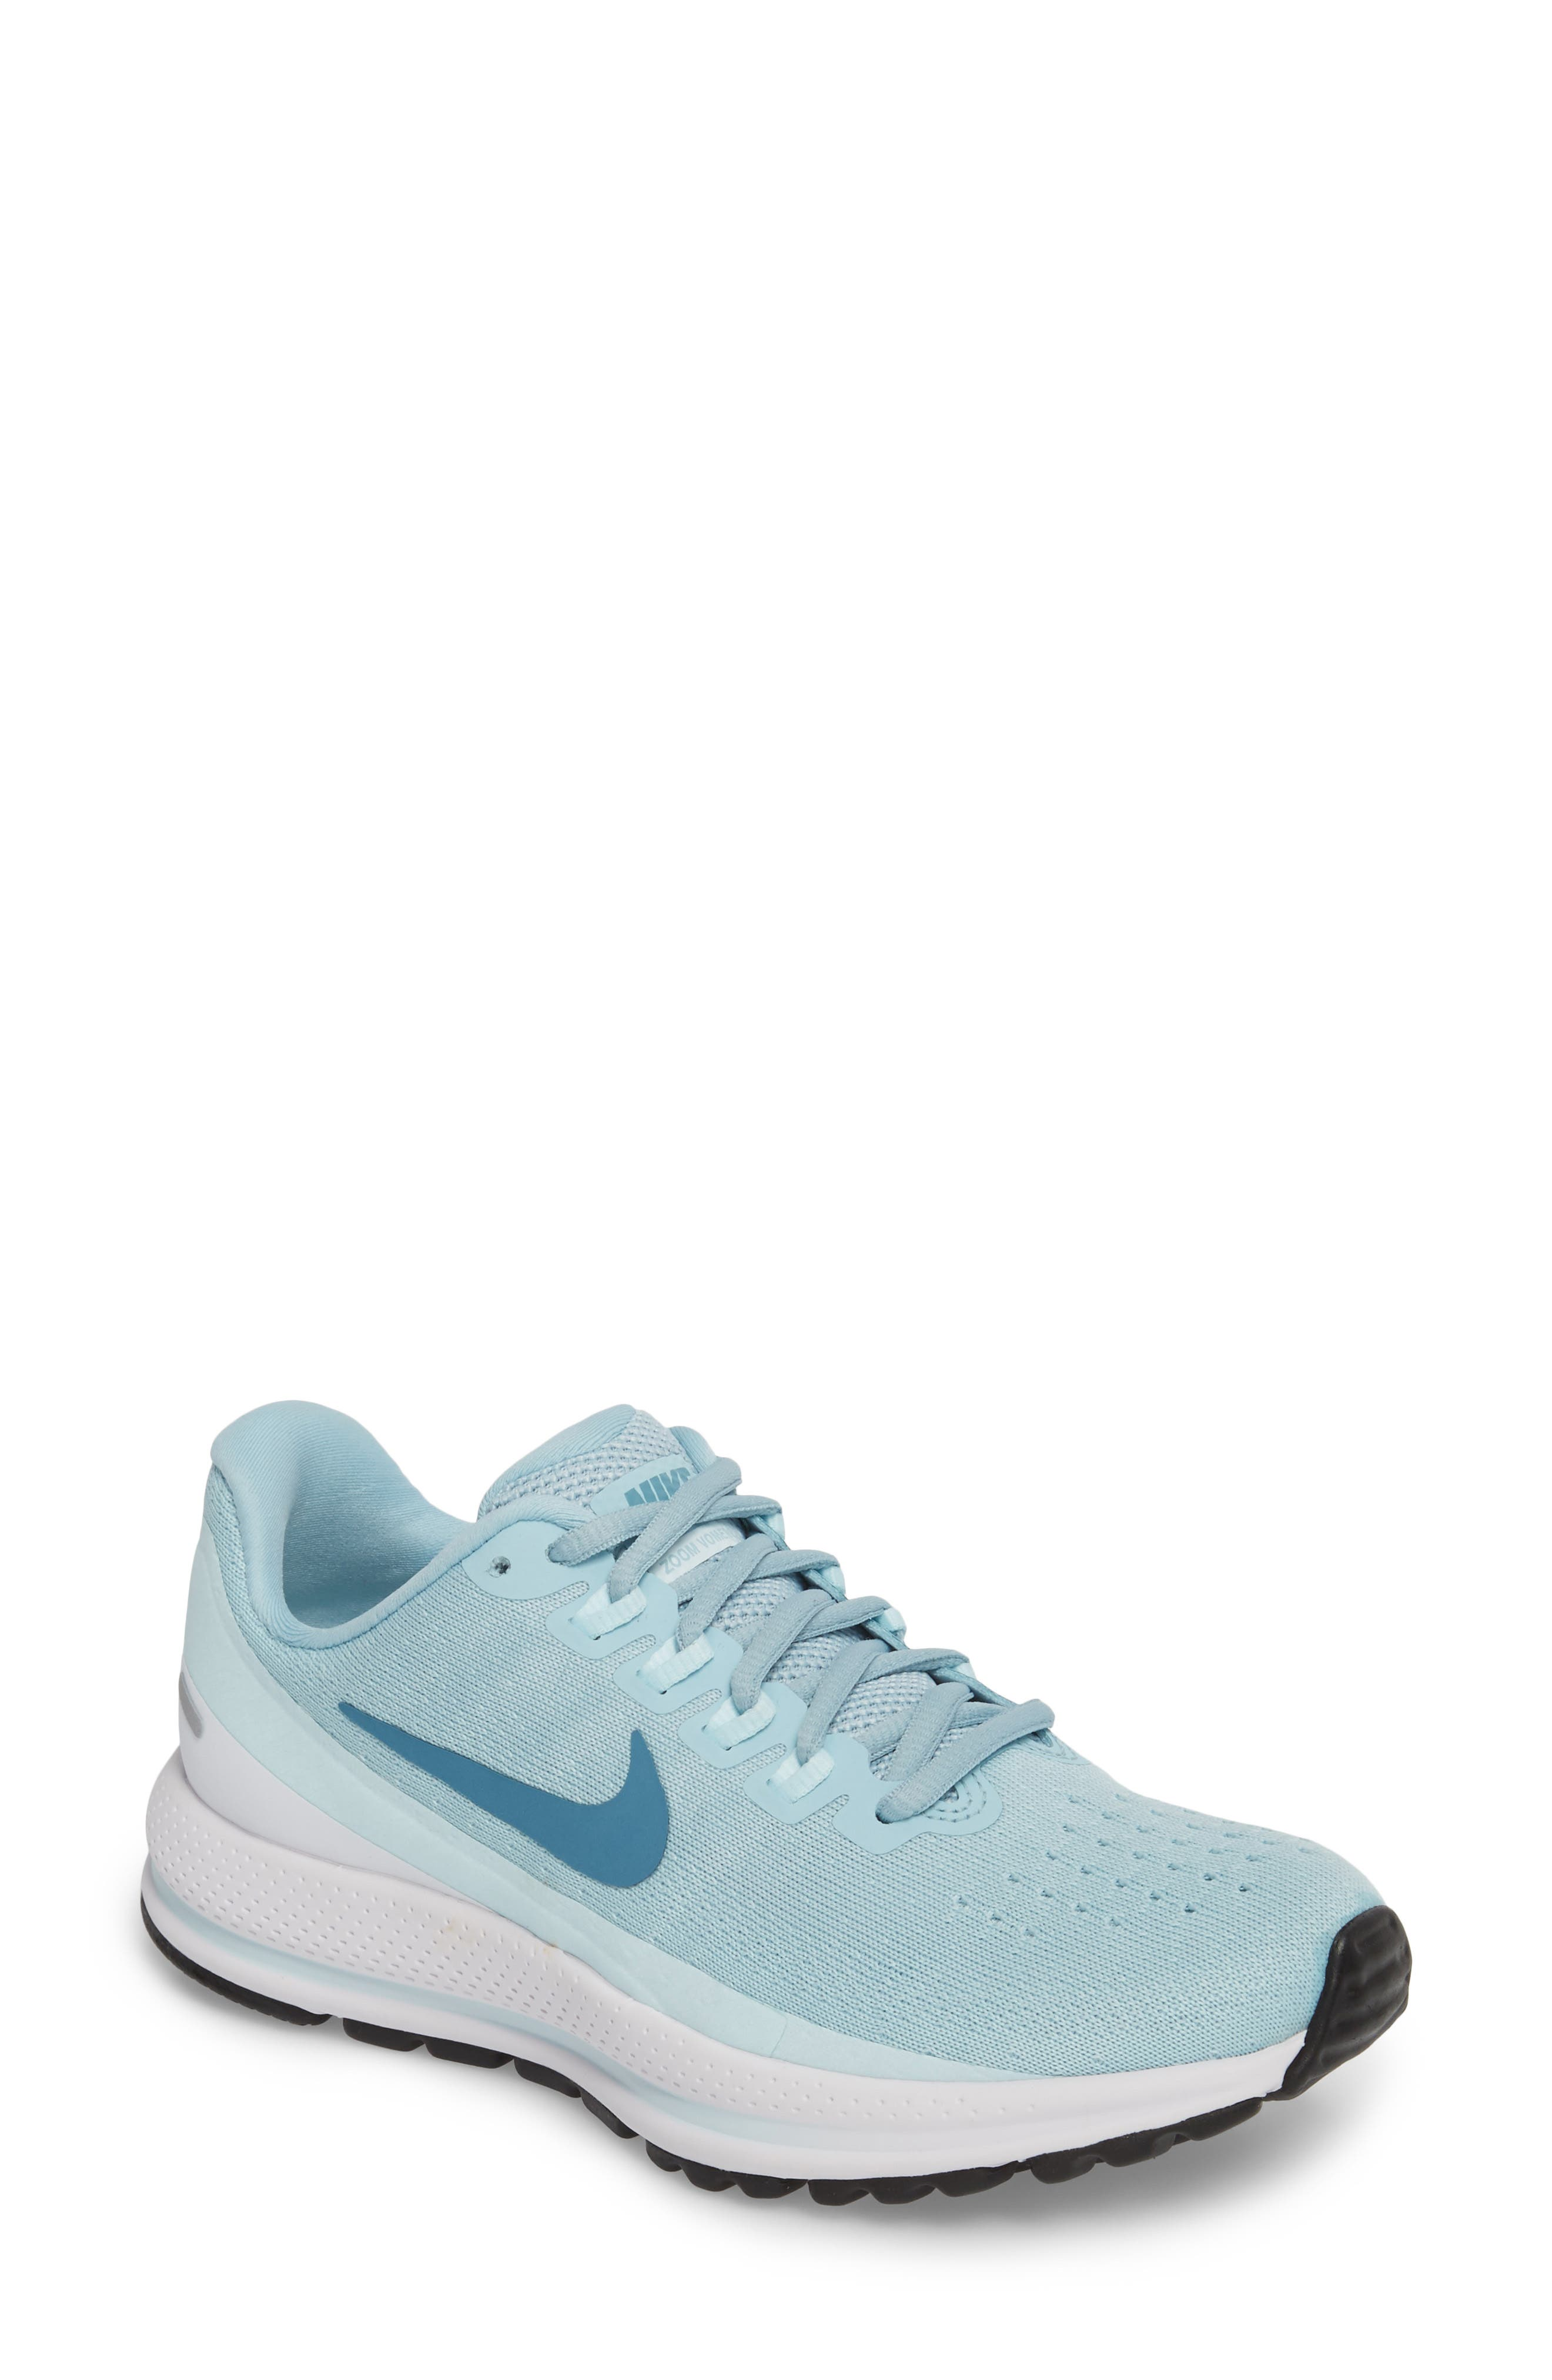 Nike Air Zoom Vomero 13 Running Shoe (Women)